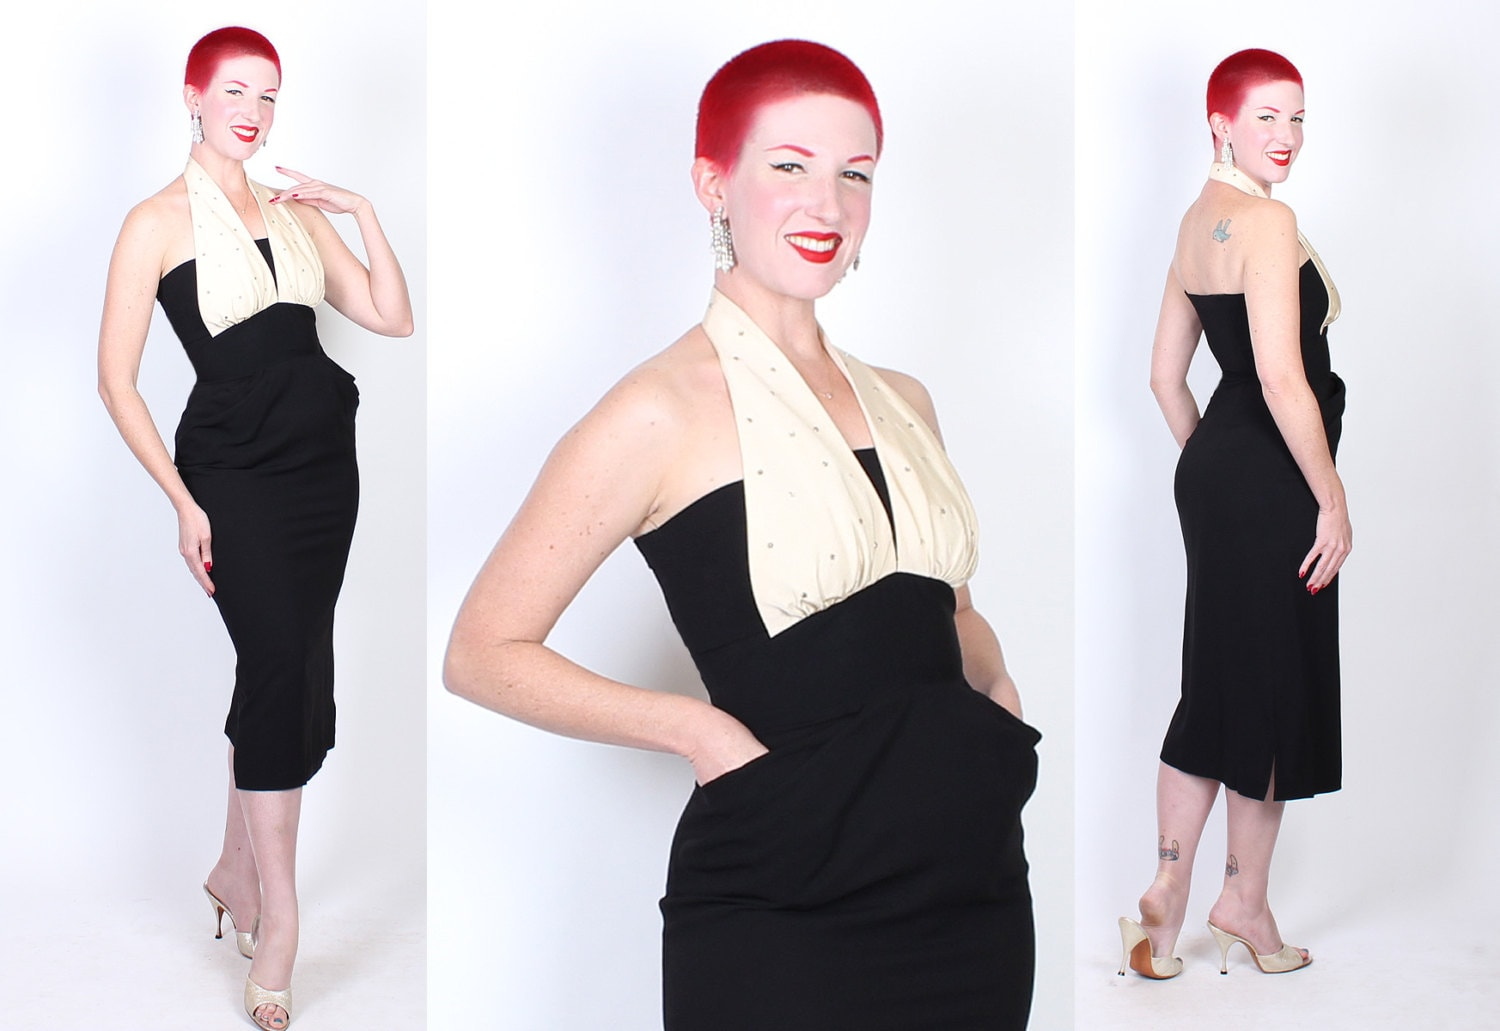 BOMBSHELL Early 1950s Rayon Crepe Extreme Hourglass Cocktail Dress w/ 3D Pleated Hip Pockets & Cream Satin Rhinestone Halter Shelf Bust - M